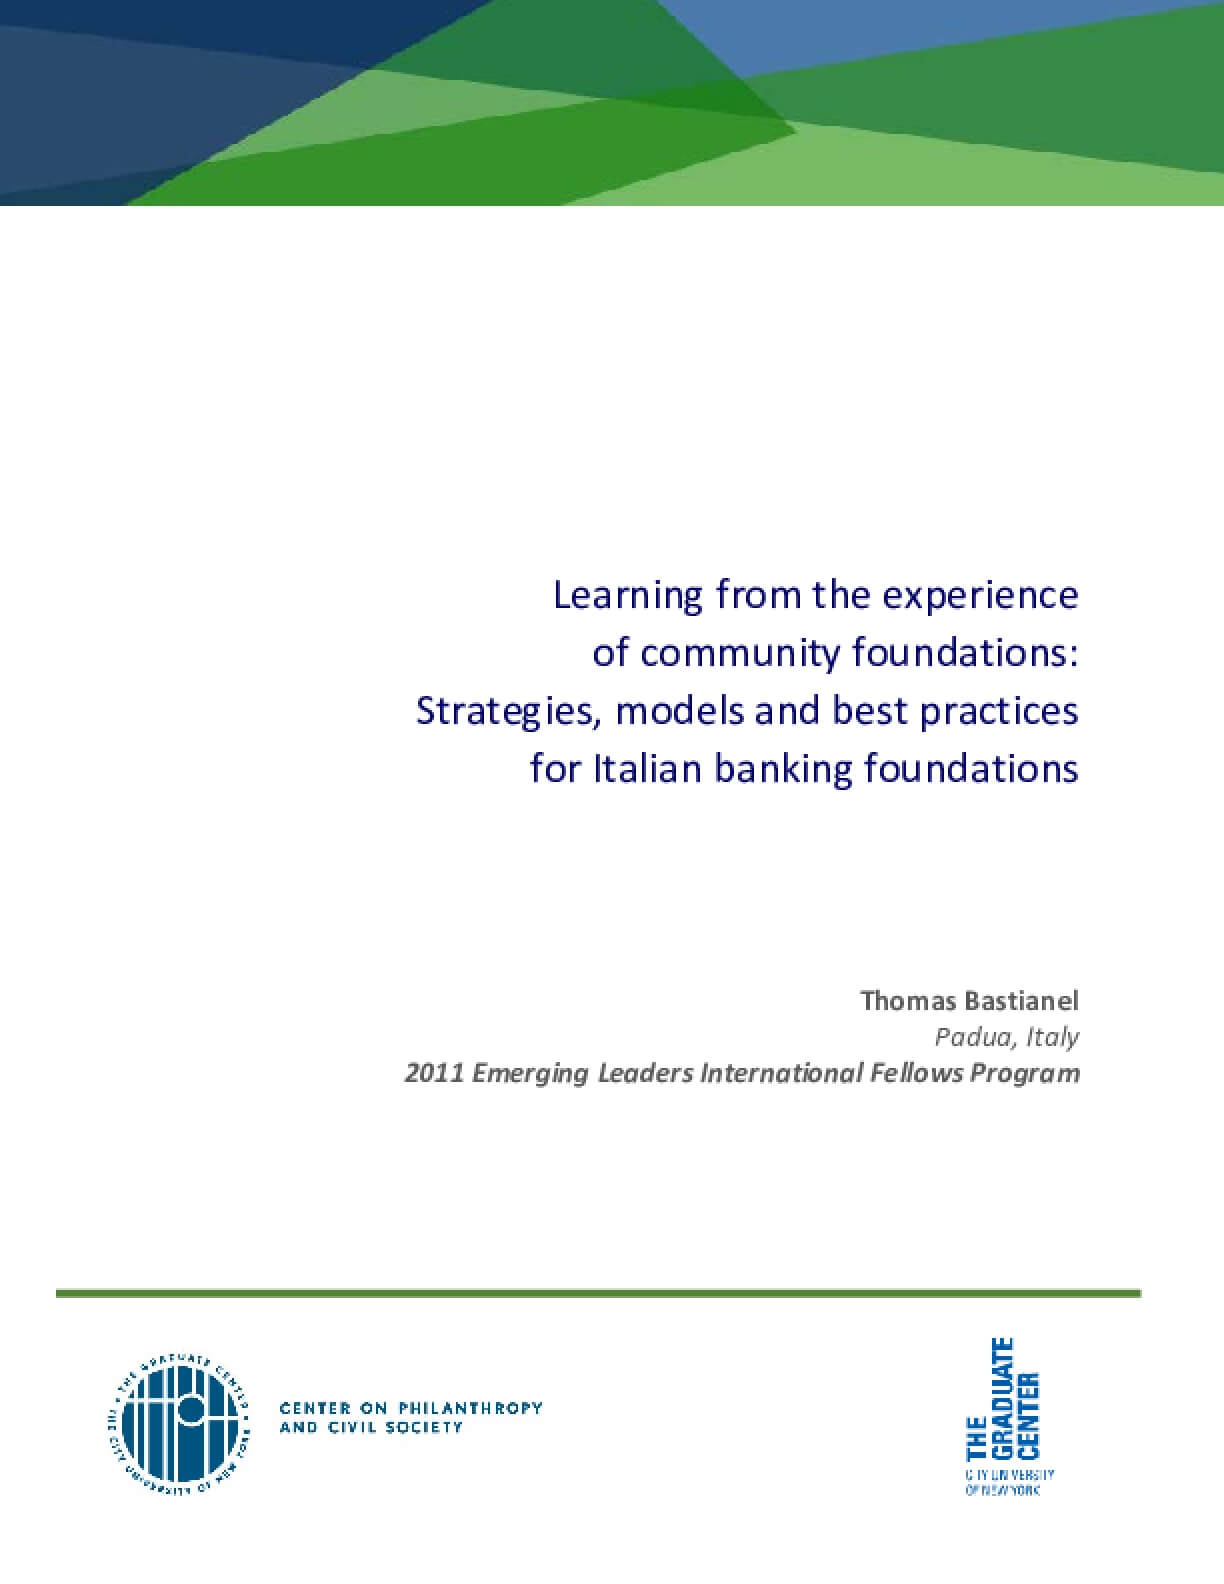 Learning from the Experience of Community Foundations: Strategies, Models and Best Practices for Italian Banking Foundations